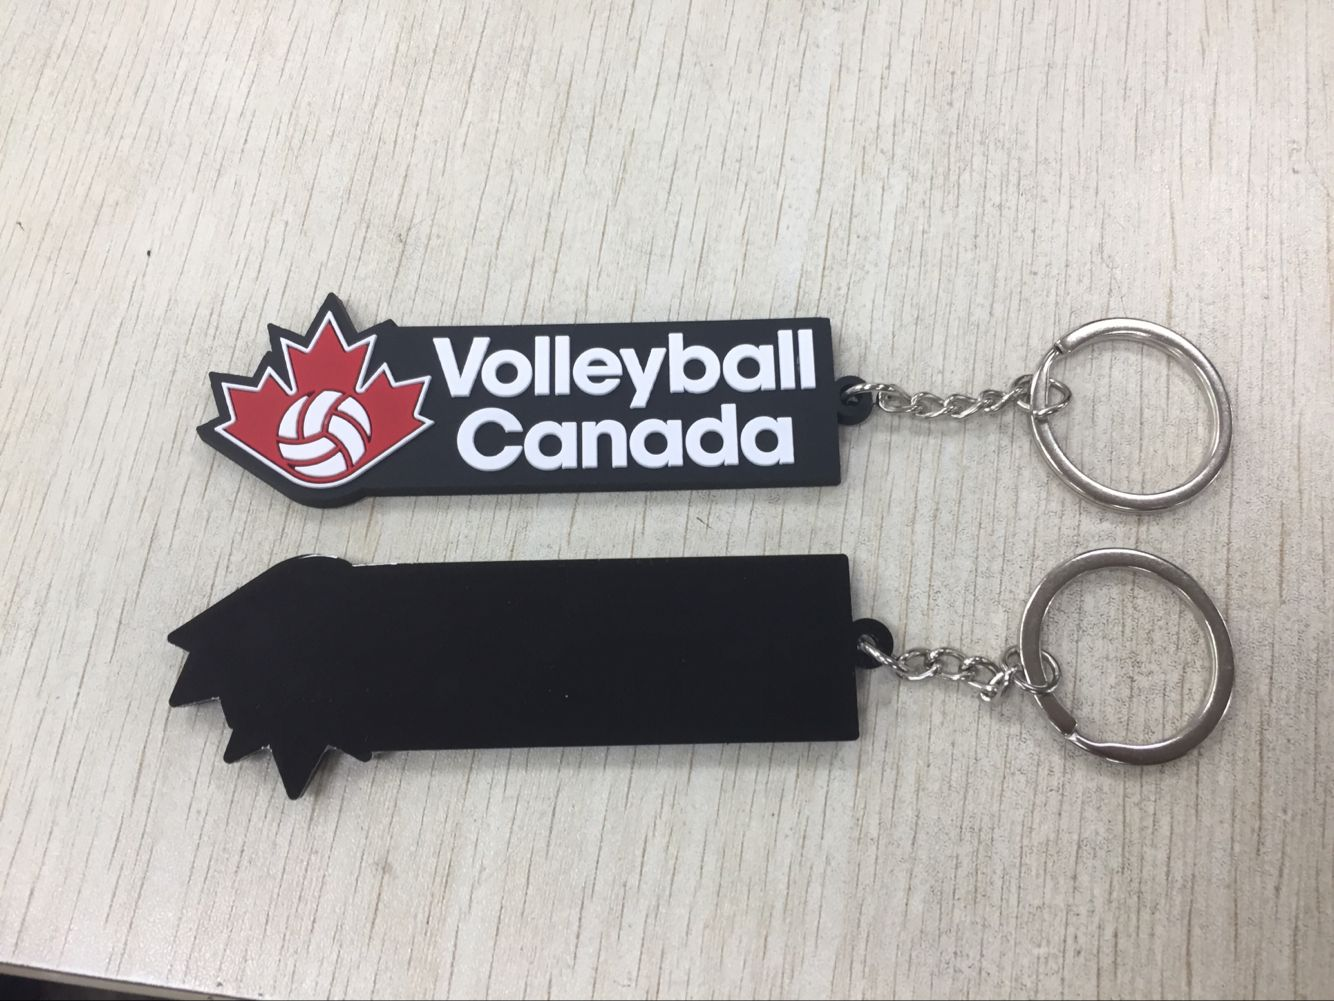 Volleyball Canada Key Chain - VBS - Official Store of ...